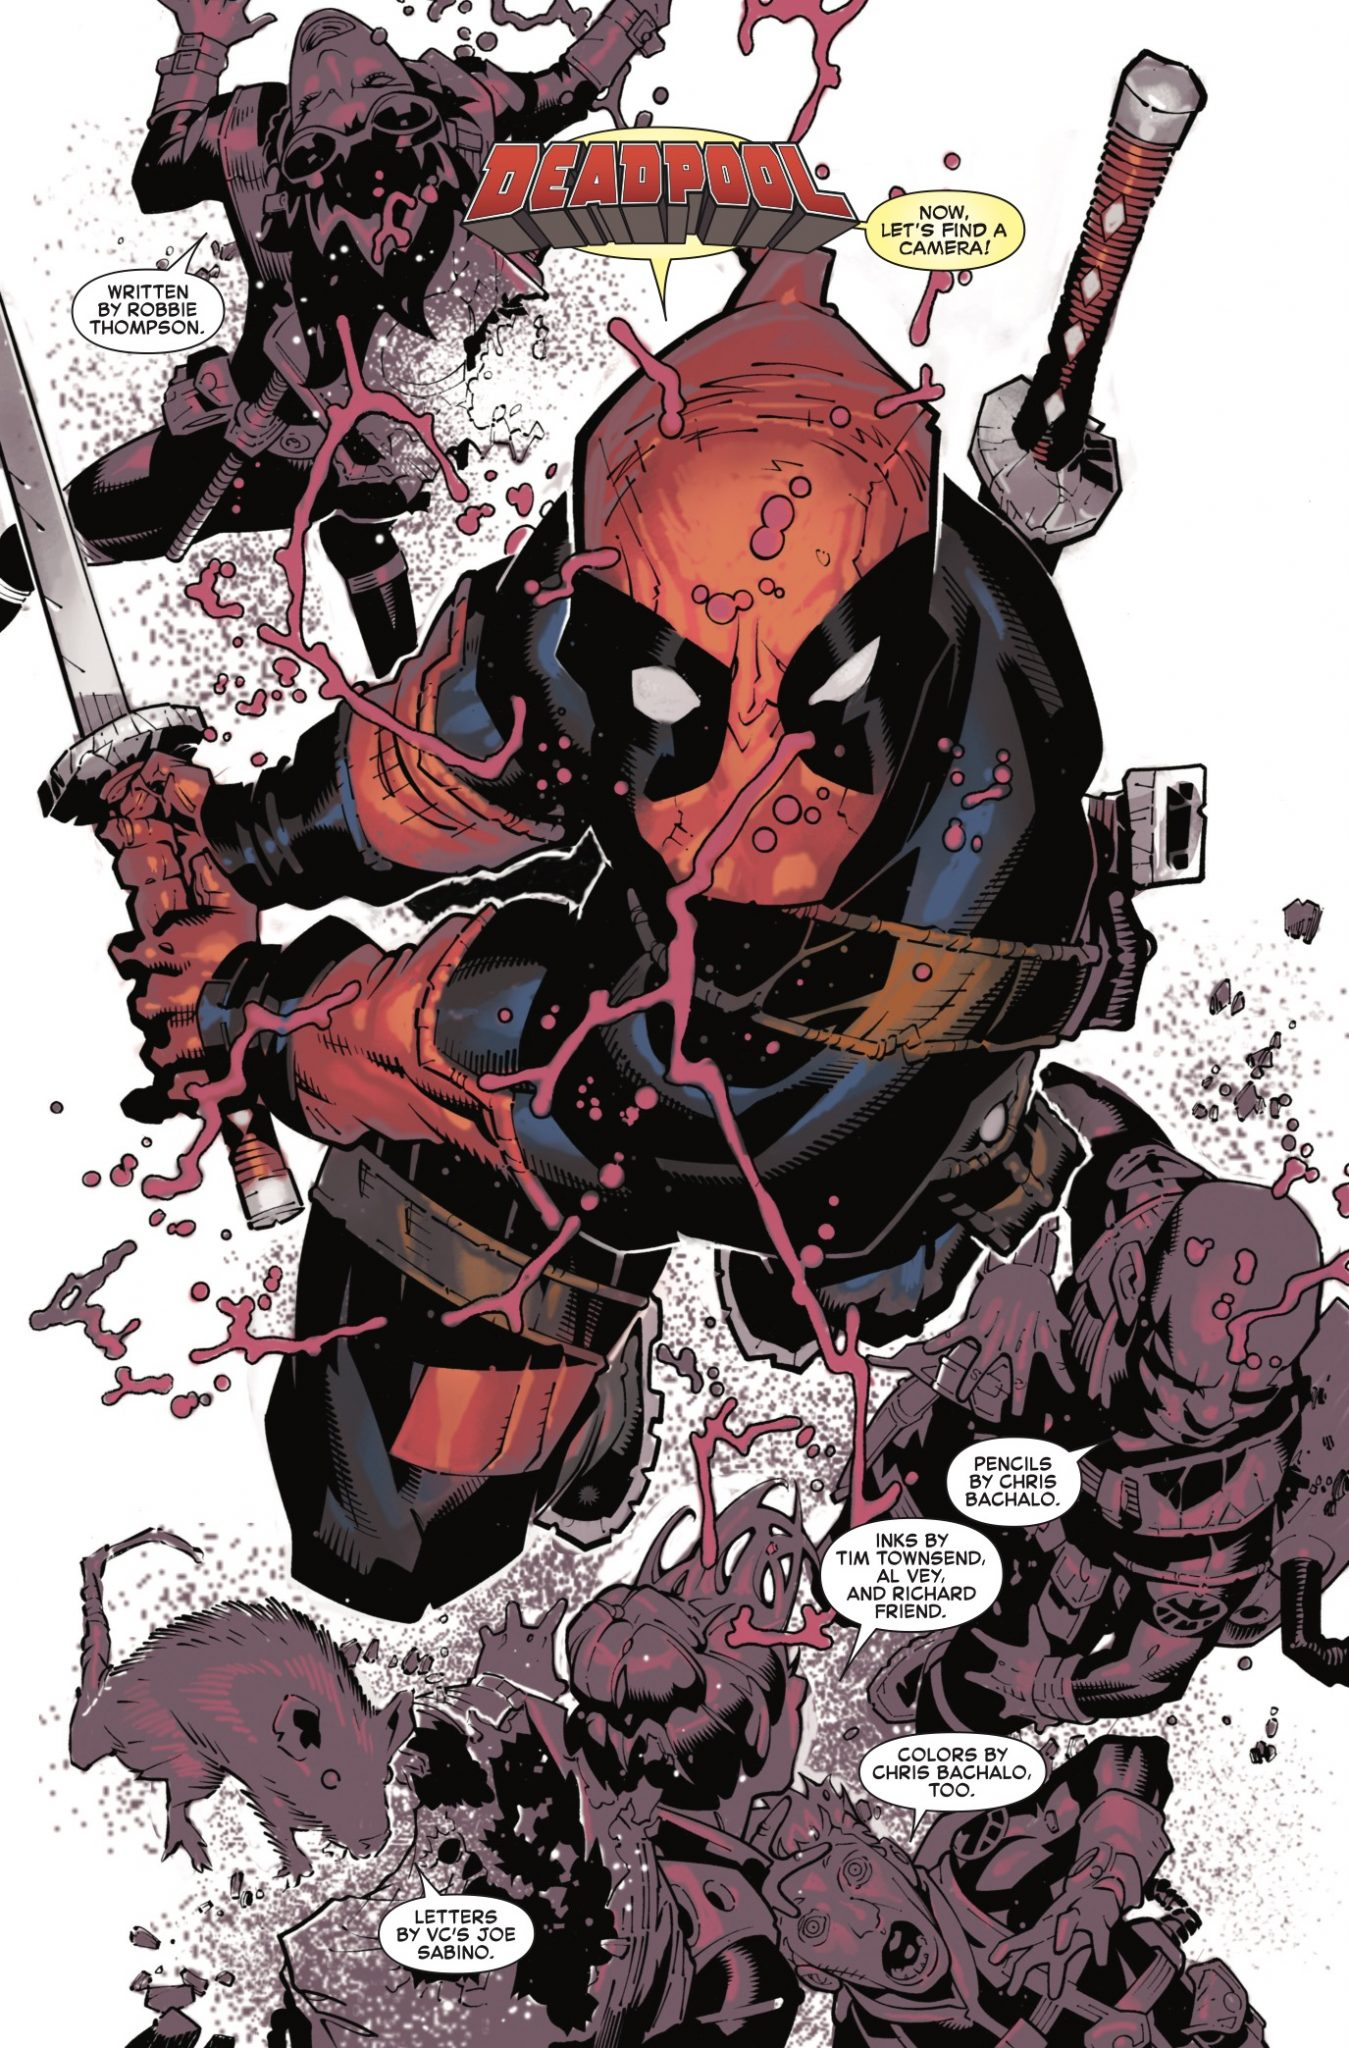 Spider-Man/Deadpool #23 Review